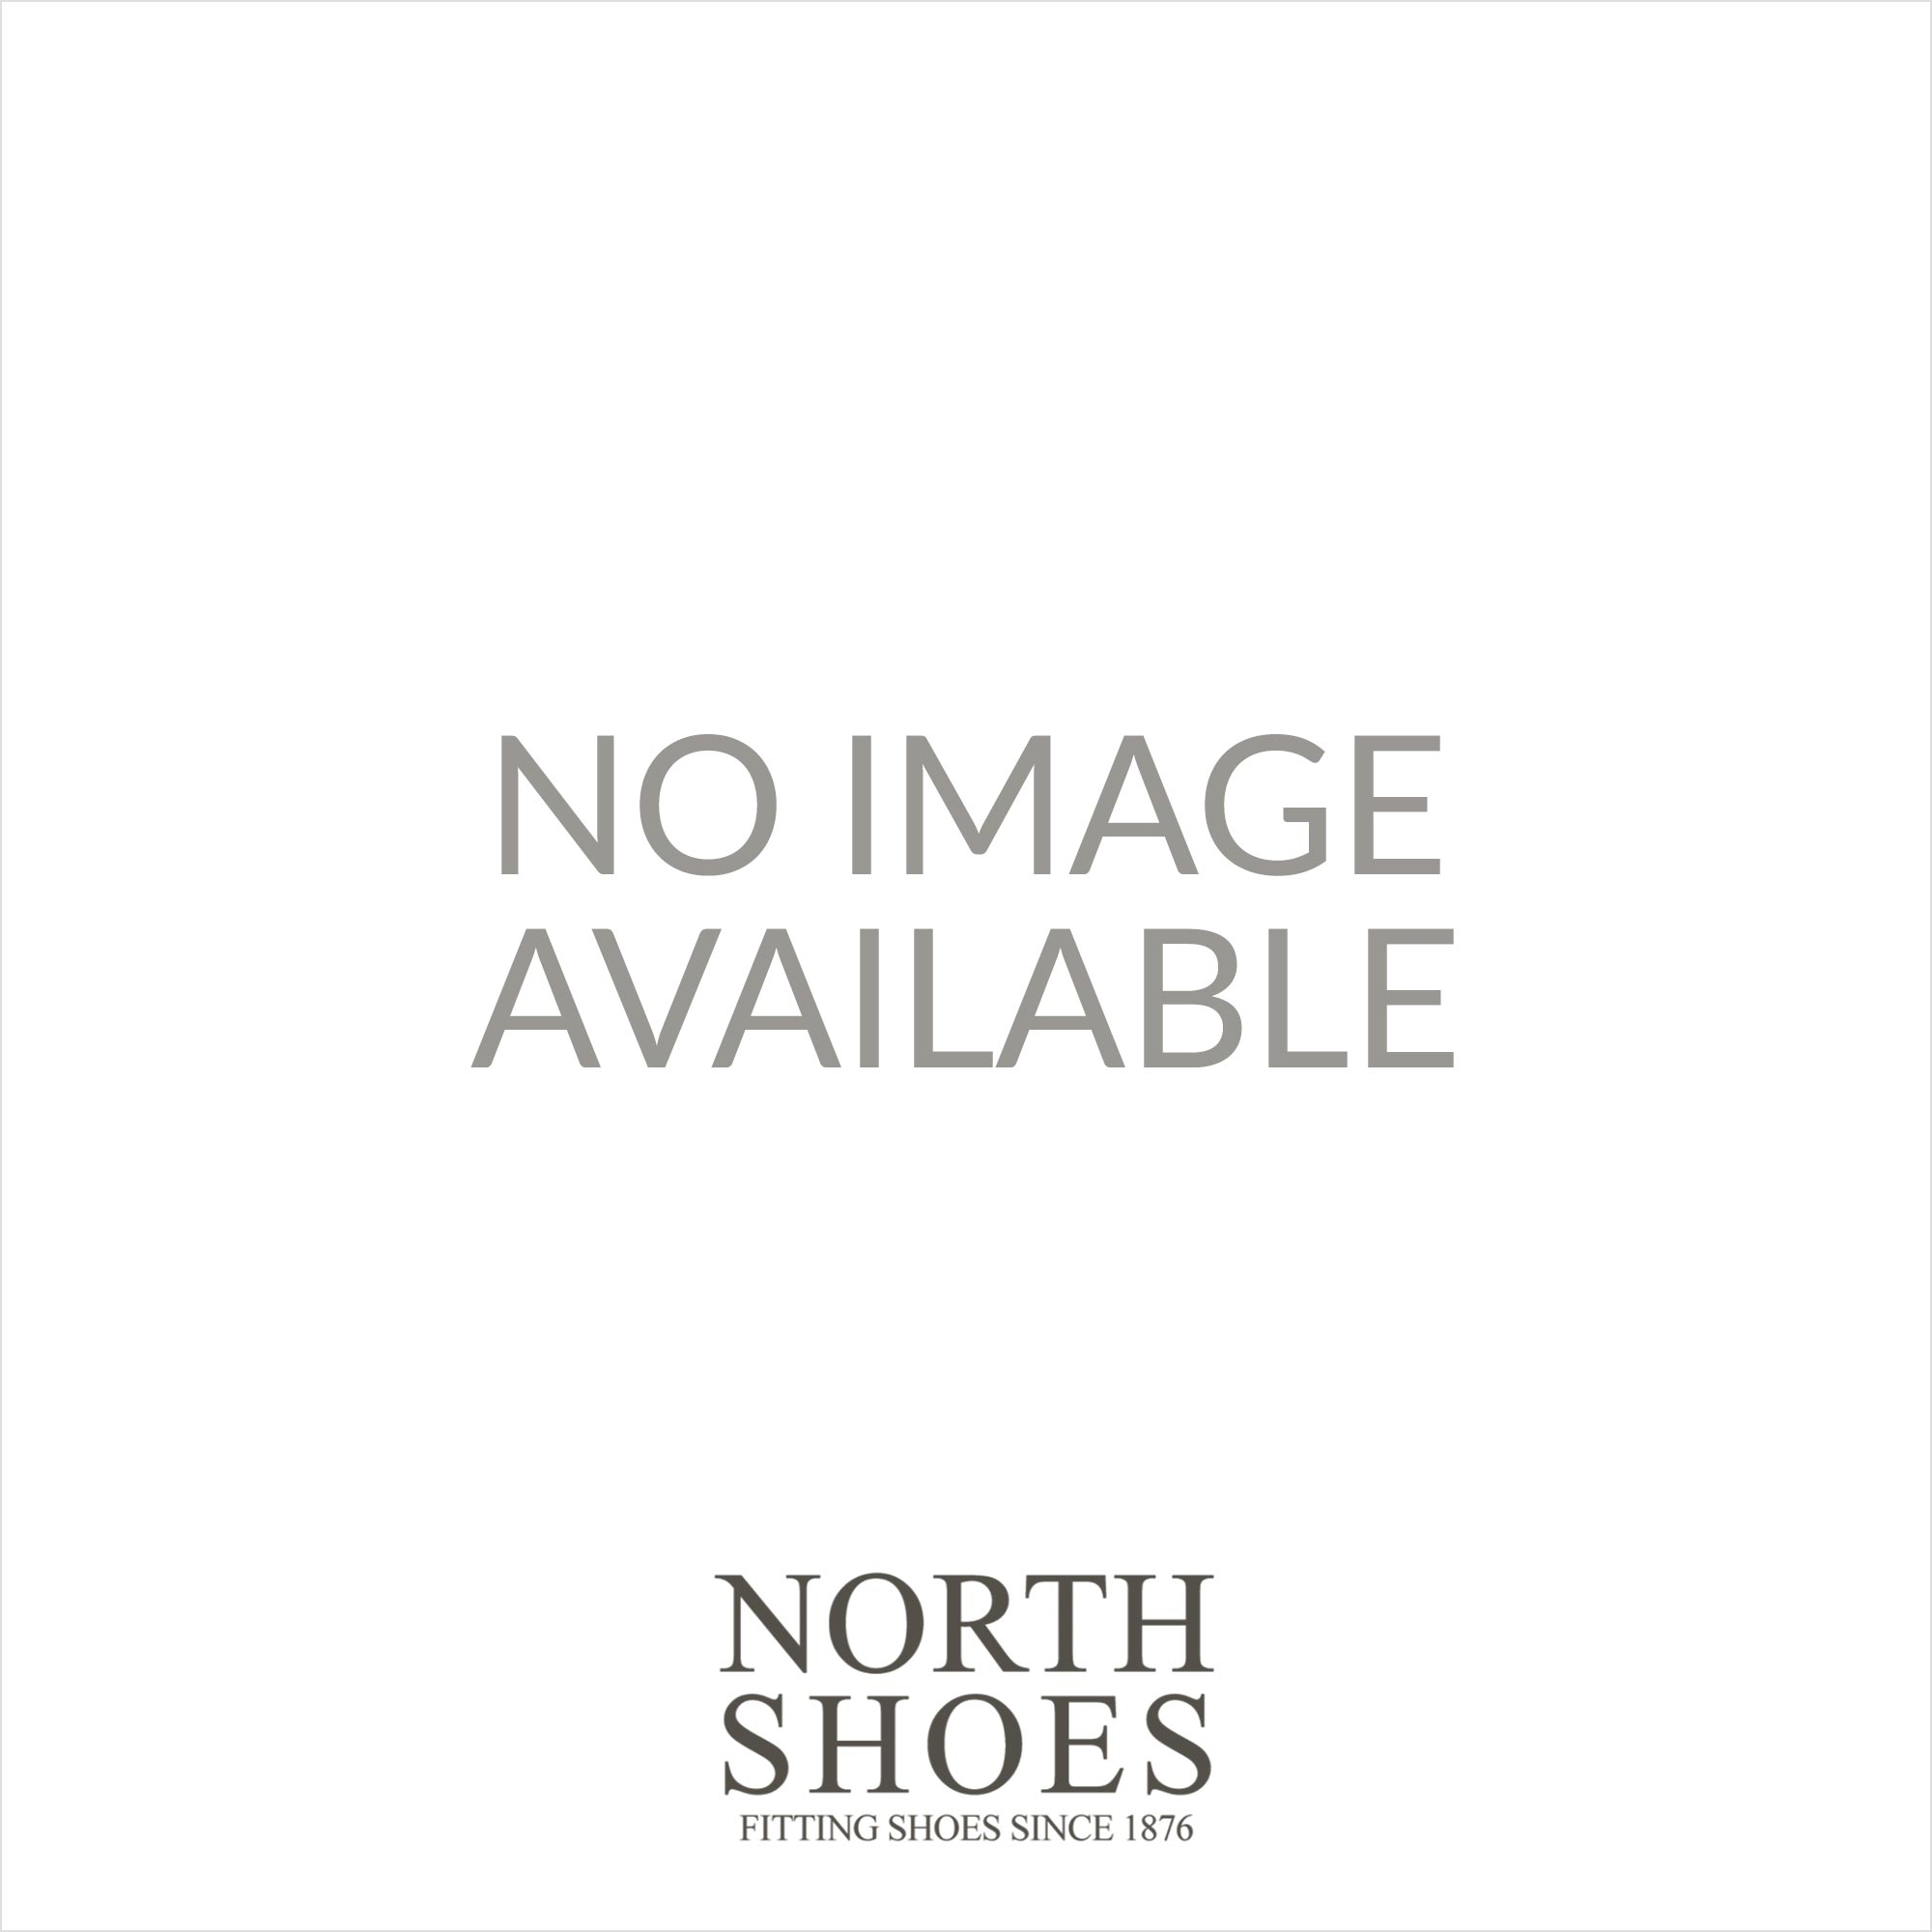 9b30d7b84a26 Clarks Home Classic Black Suede Leather Faux Fur Womens Slip On Mule Slipper  - Clarks from North Shoes UK